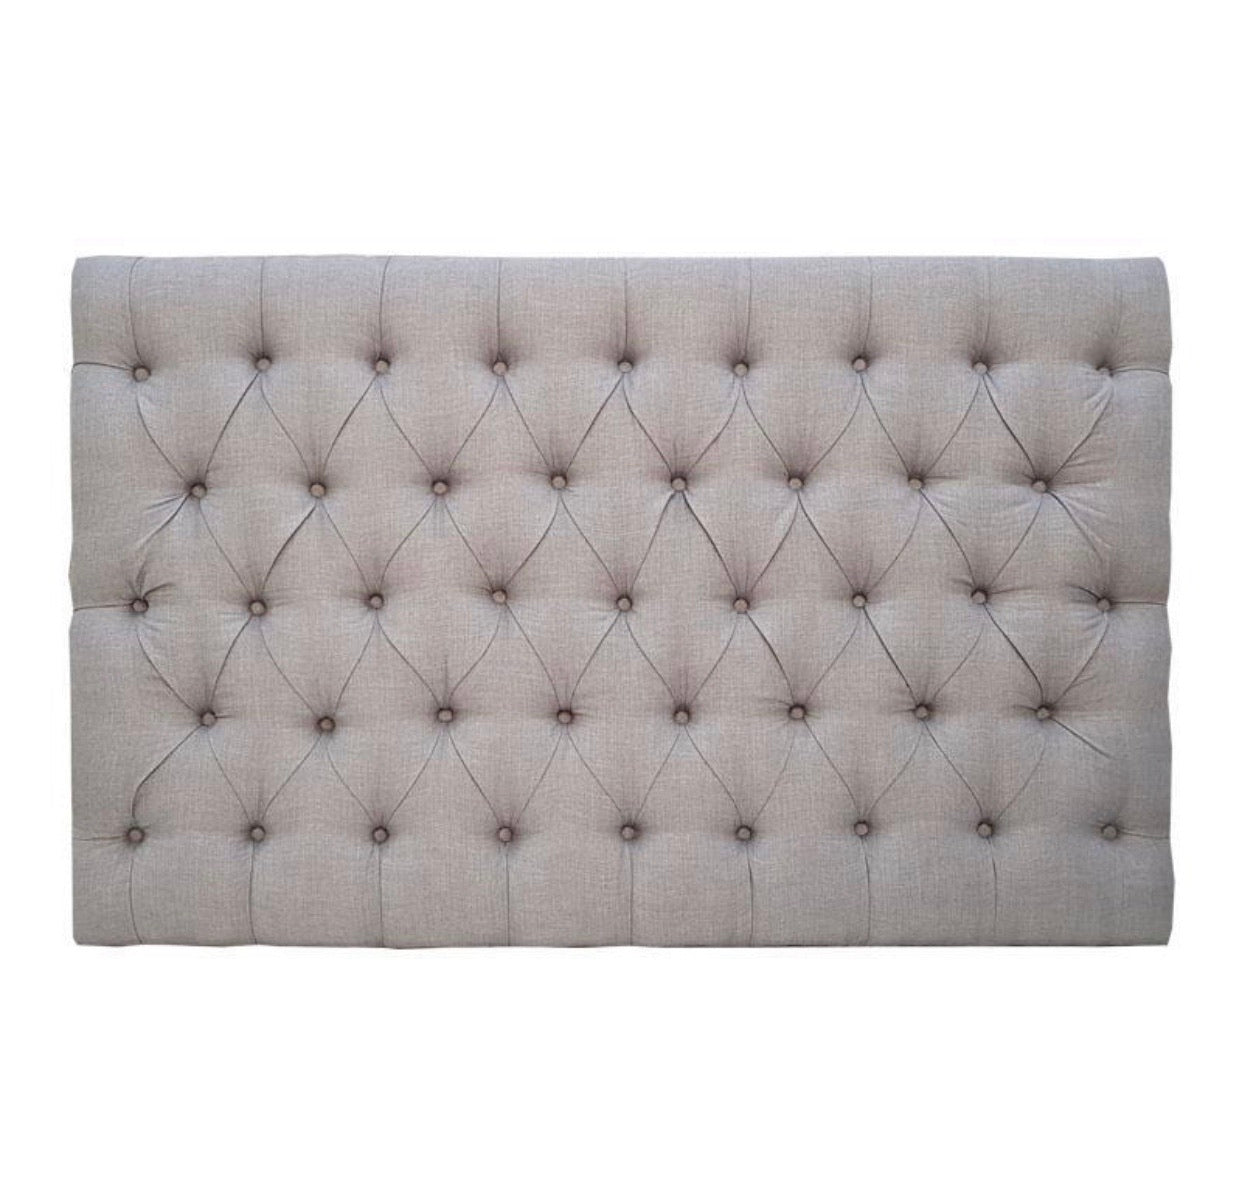 Sloane Headboard - Cotton Blend